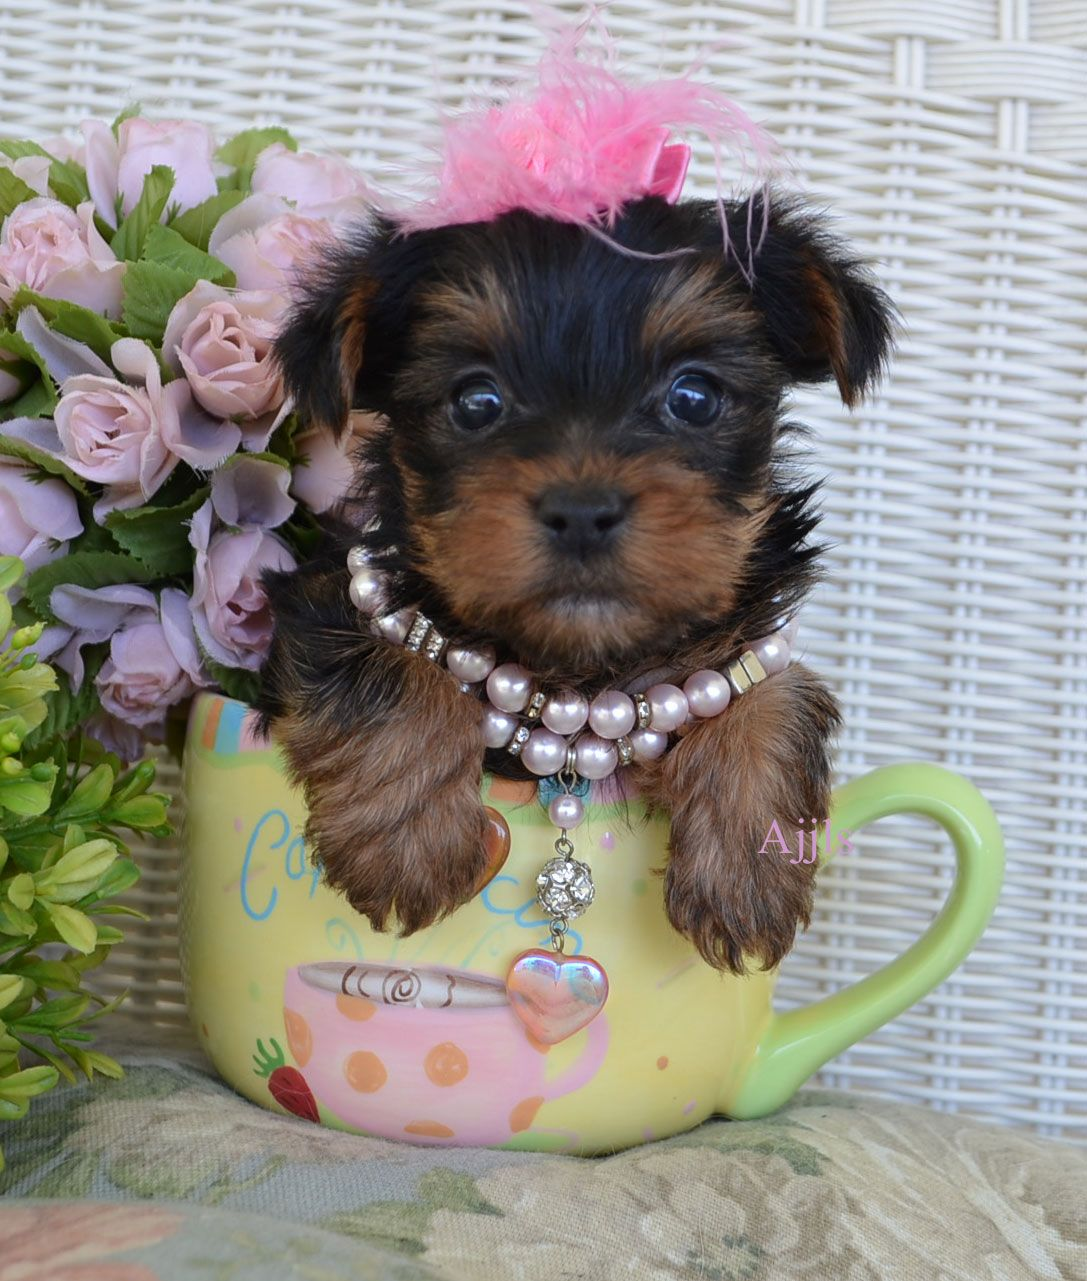 Teacup Yorkie Puppies For Sale puppies Pinterest